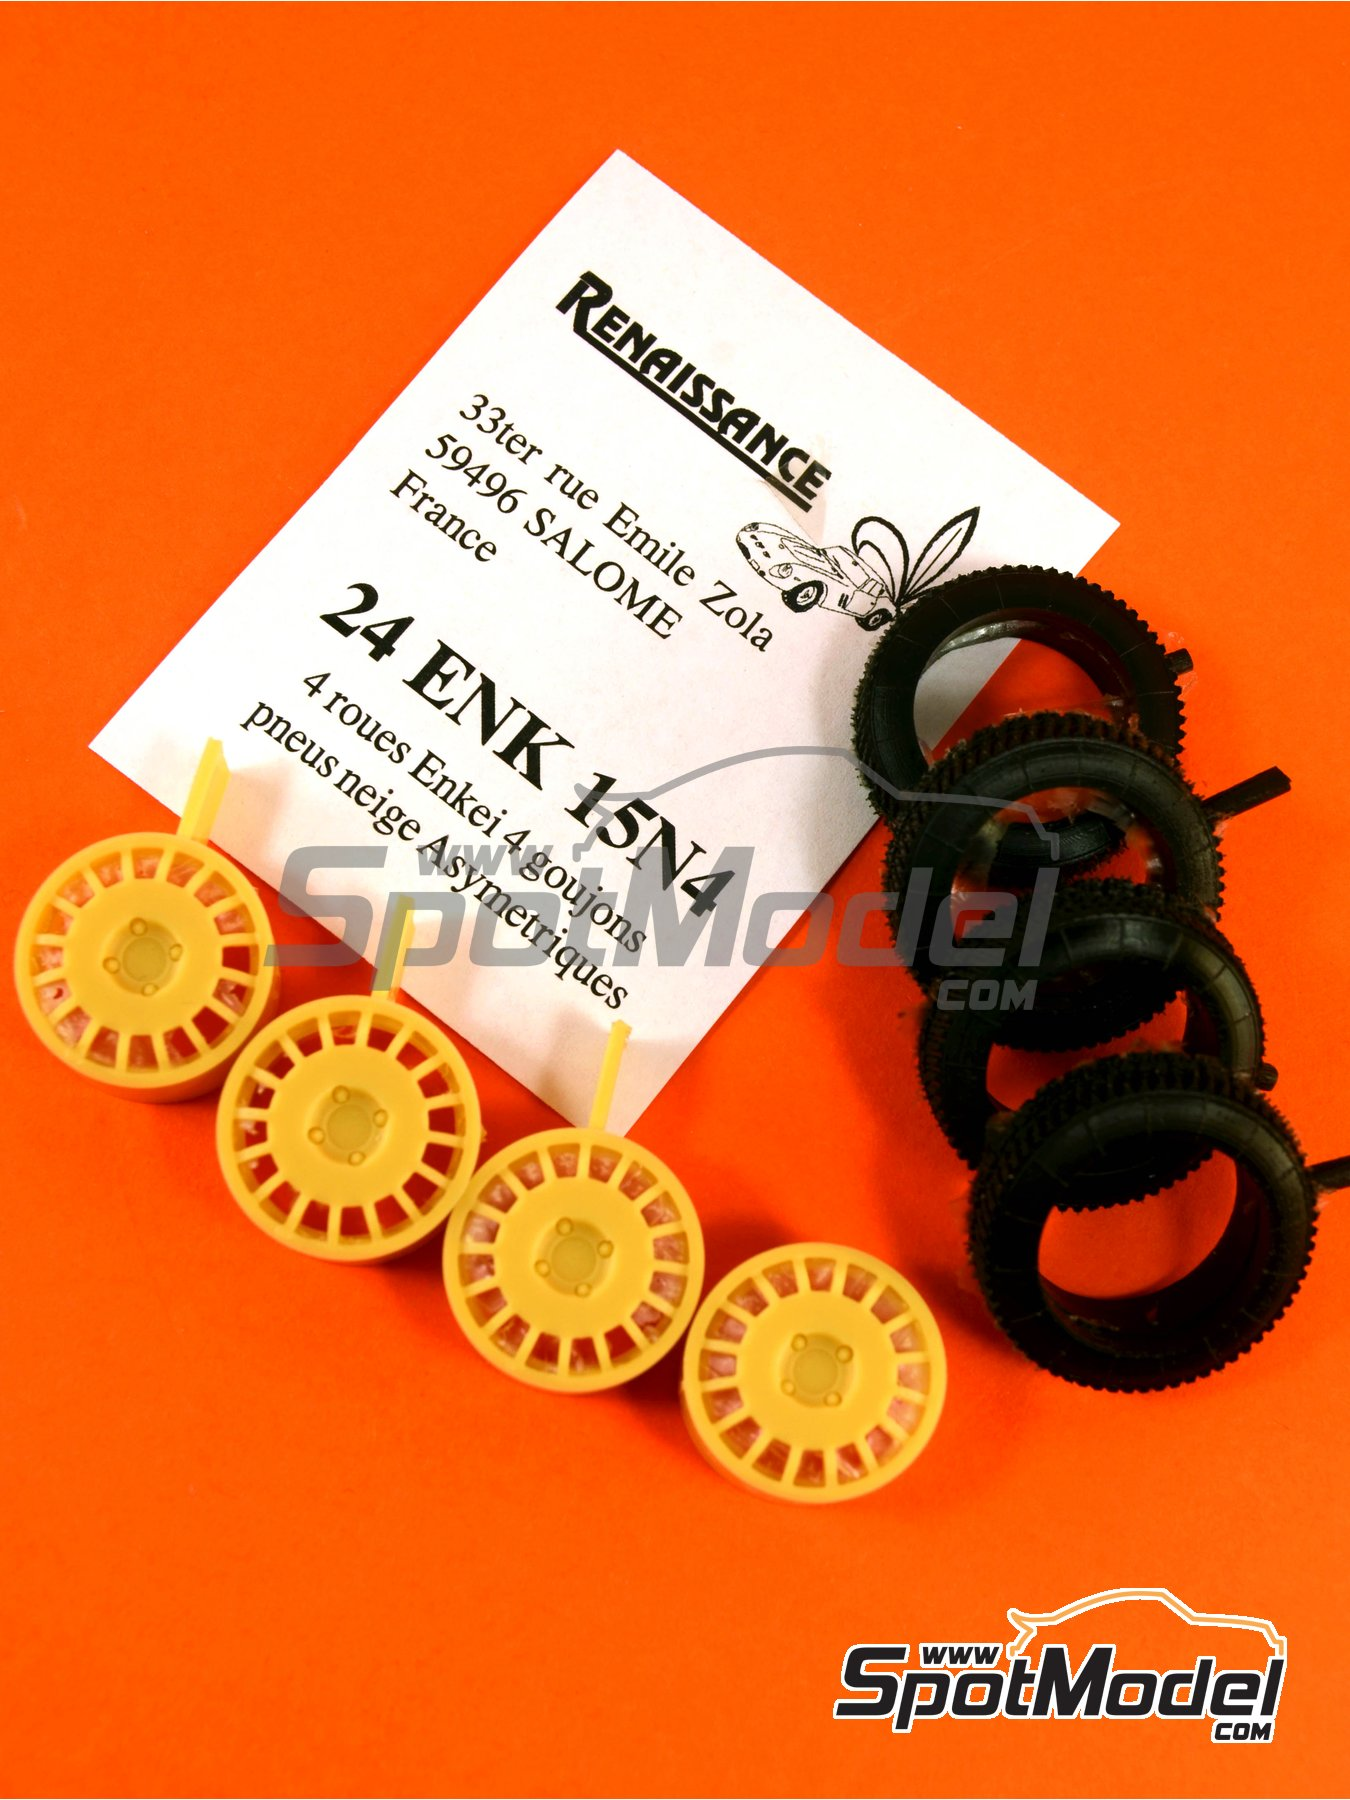 Enkei 15 inches 4 nuts asymmetric snow tyres | Rims and tyres set in 1/24 scale manufactured by Renaissance Models (ref. 24ENK15N4) image